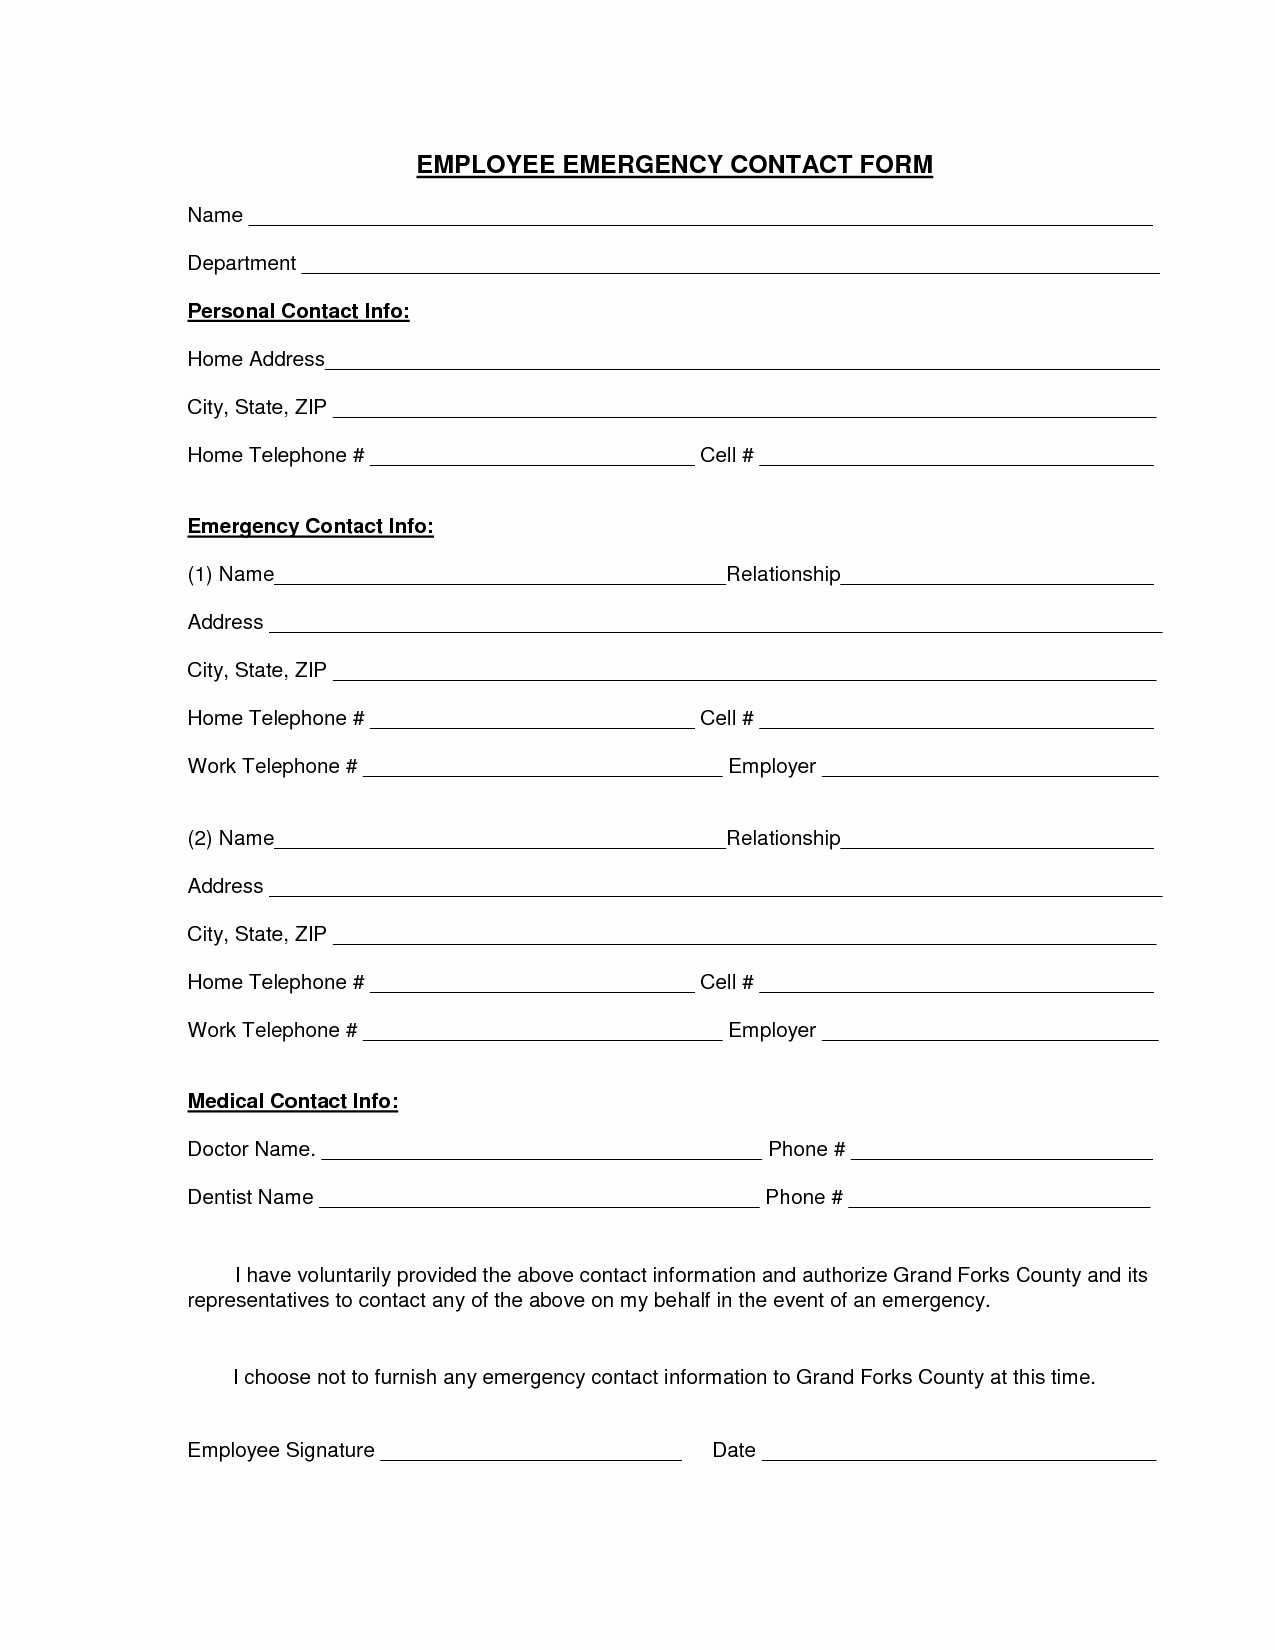 Employee Emergency Contact forms Best Of Employee Emergency Contact Printable form to Pin